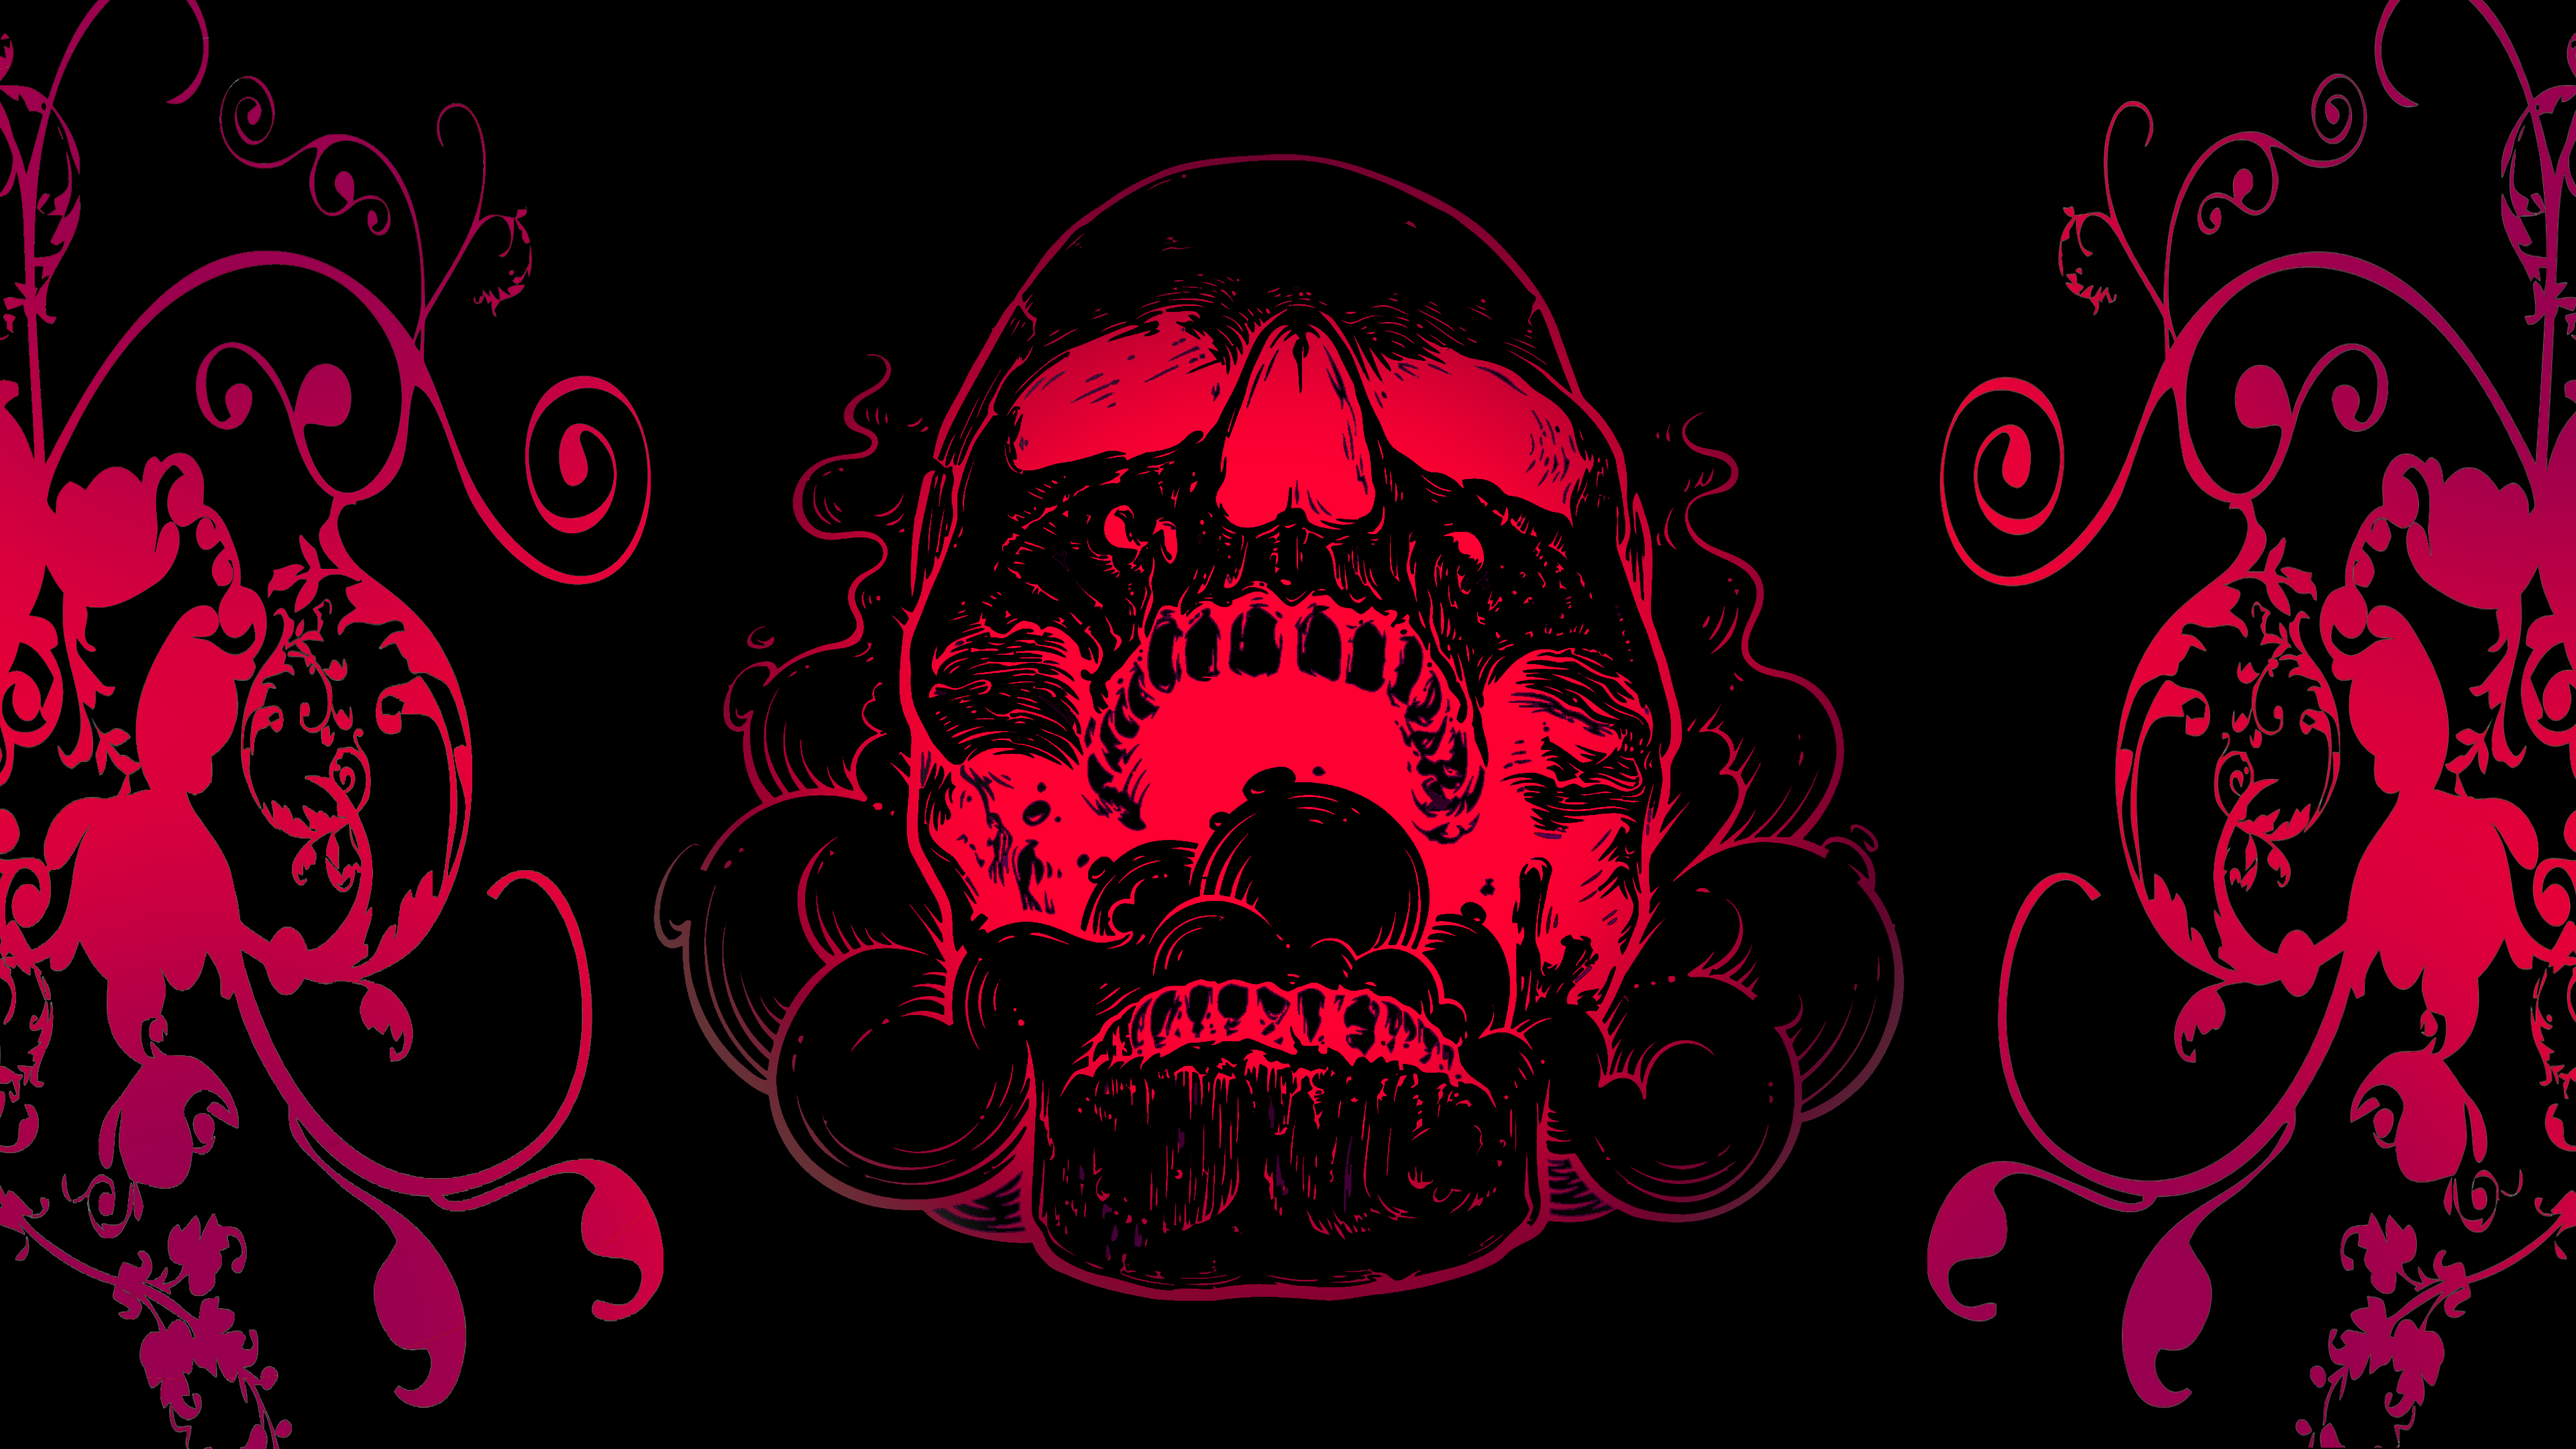 Black And Red Skull 4k Ultra Hd Wallpaper Background Image 3840x2160 Id 886752 Wallpaper Abyss